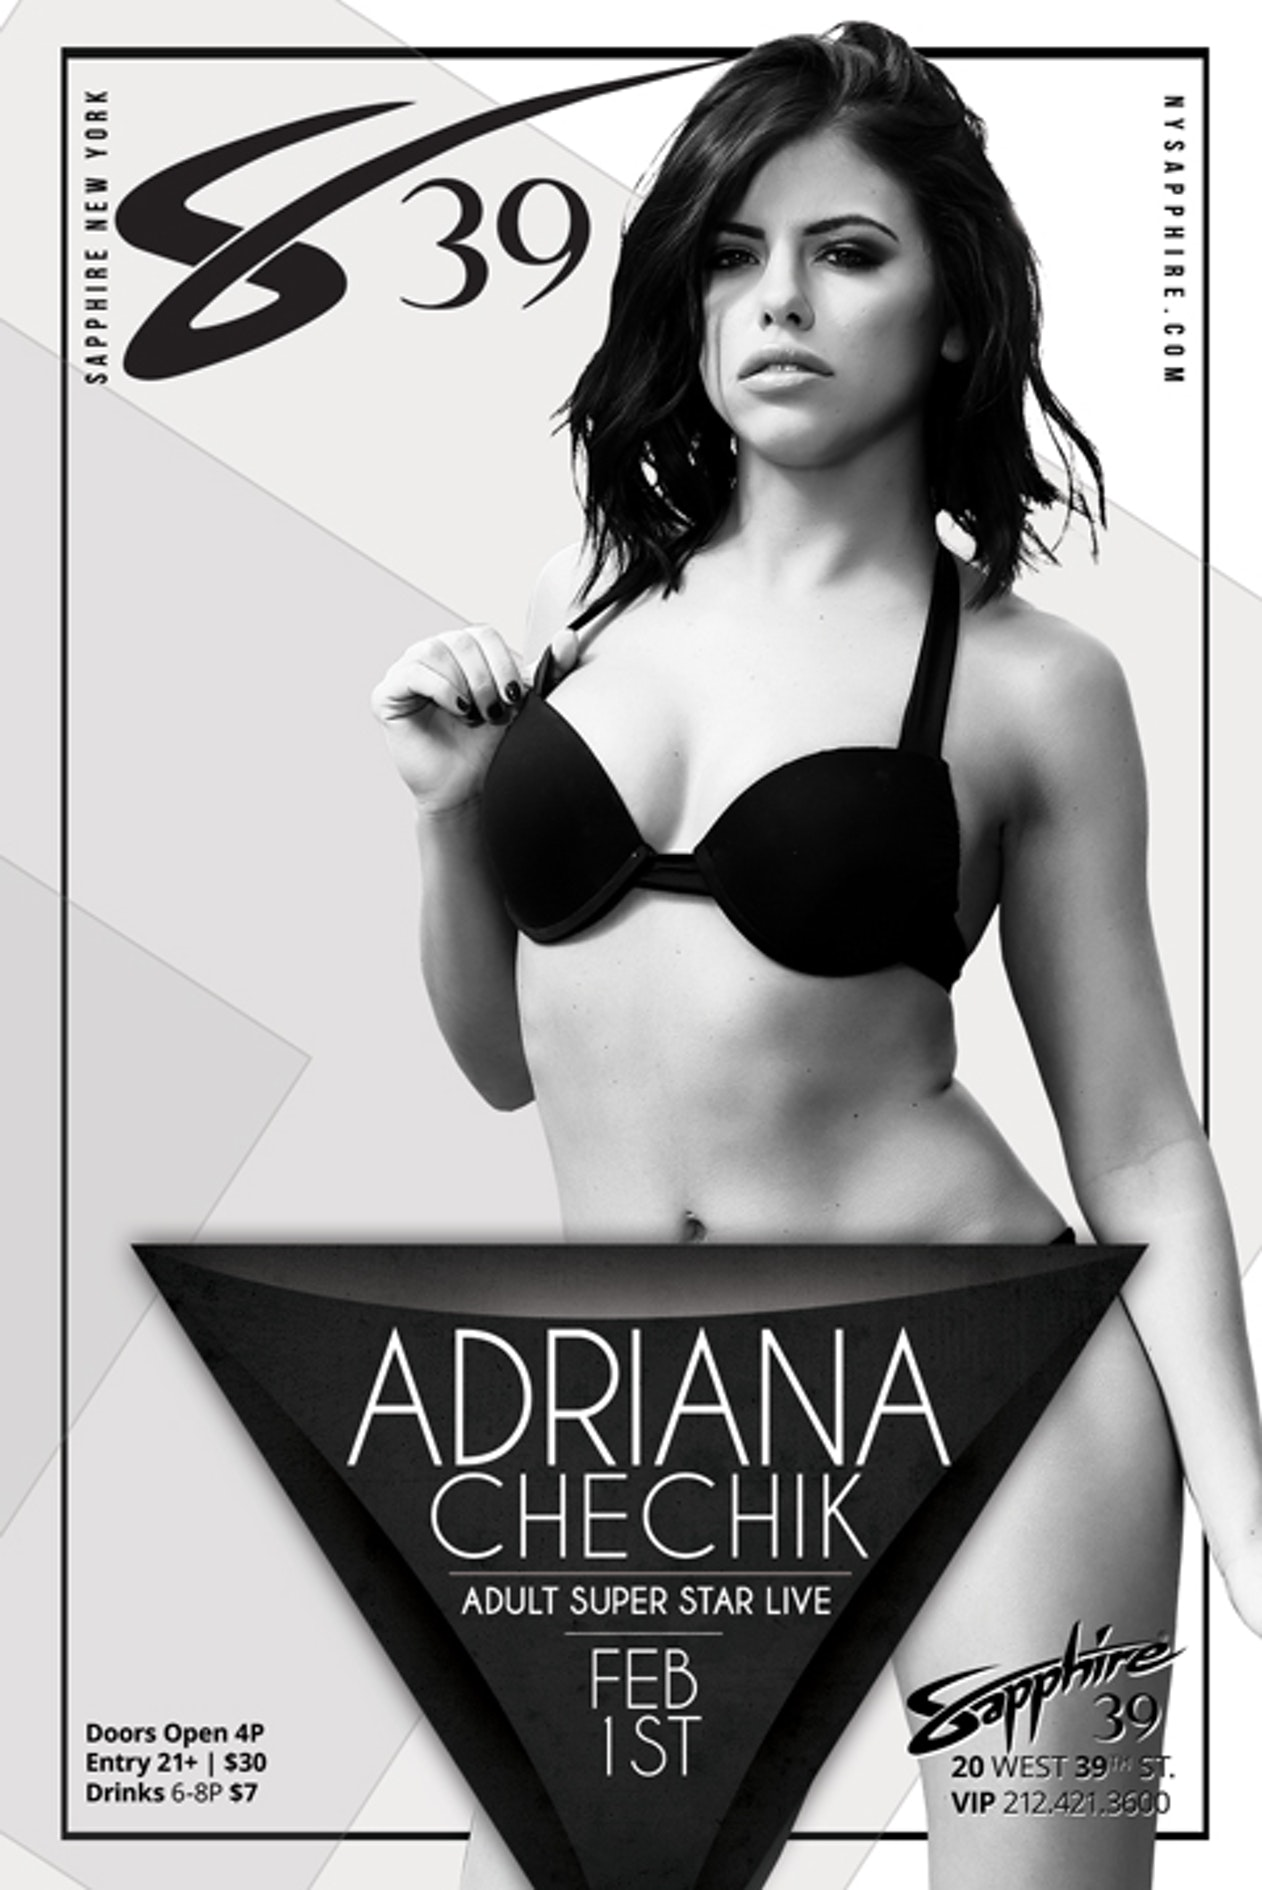 buy tickets and tables to adult superstar adriana chechik thursday